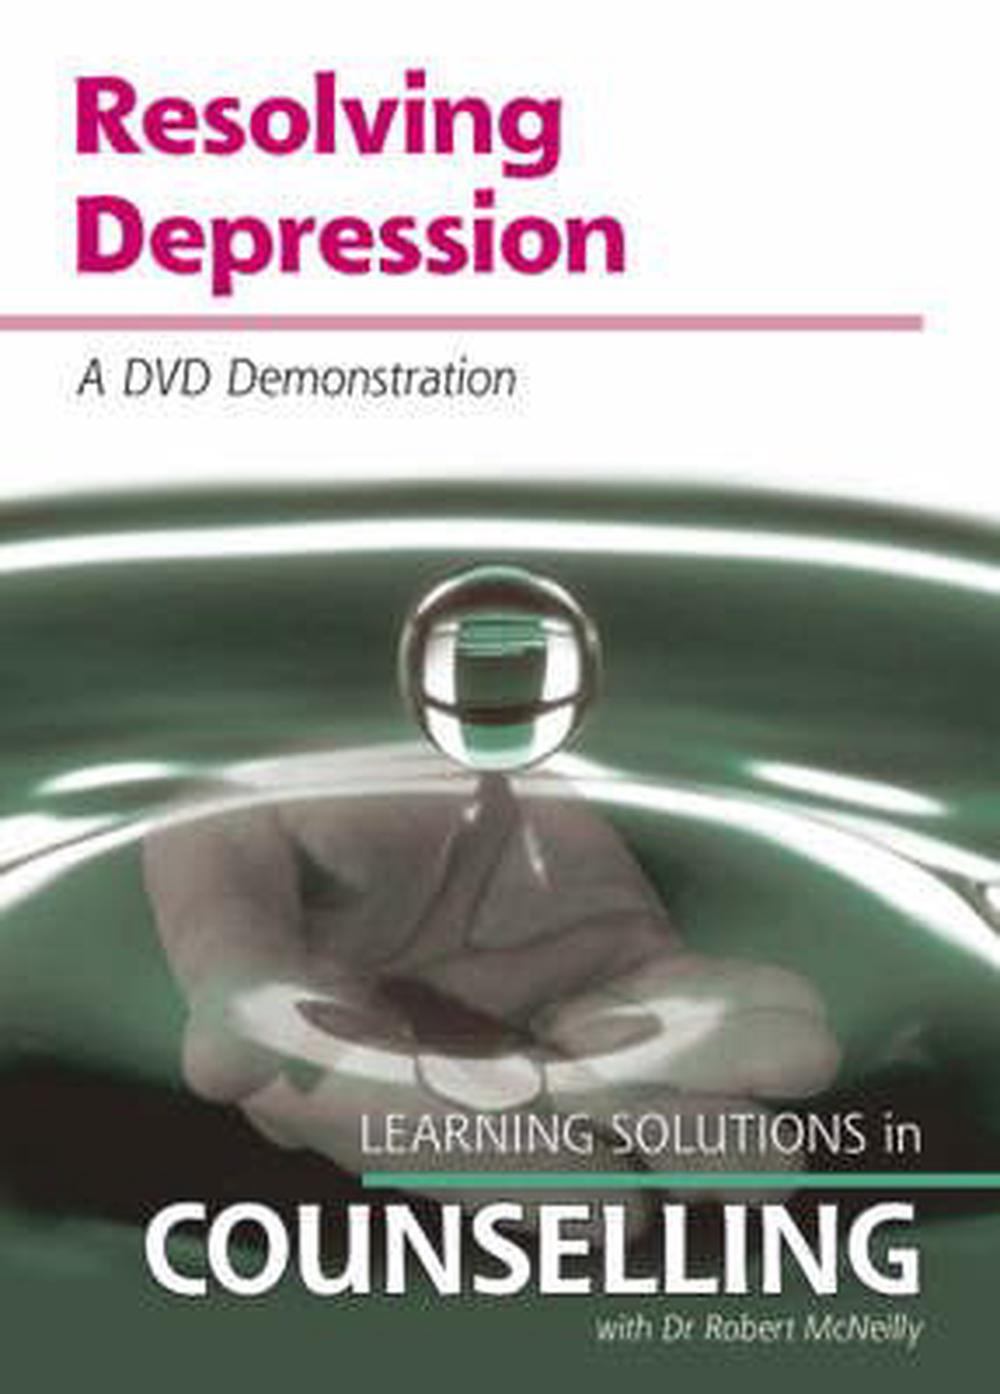 Resolving Depression